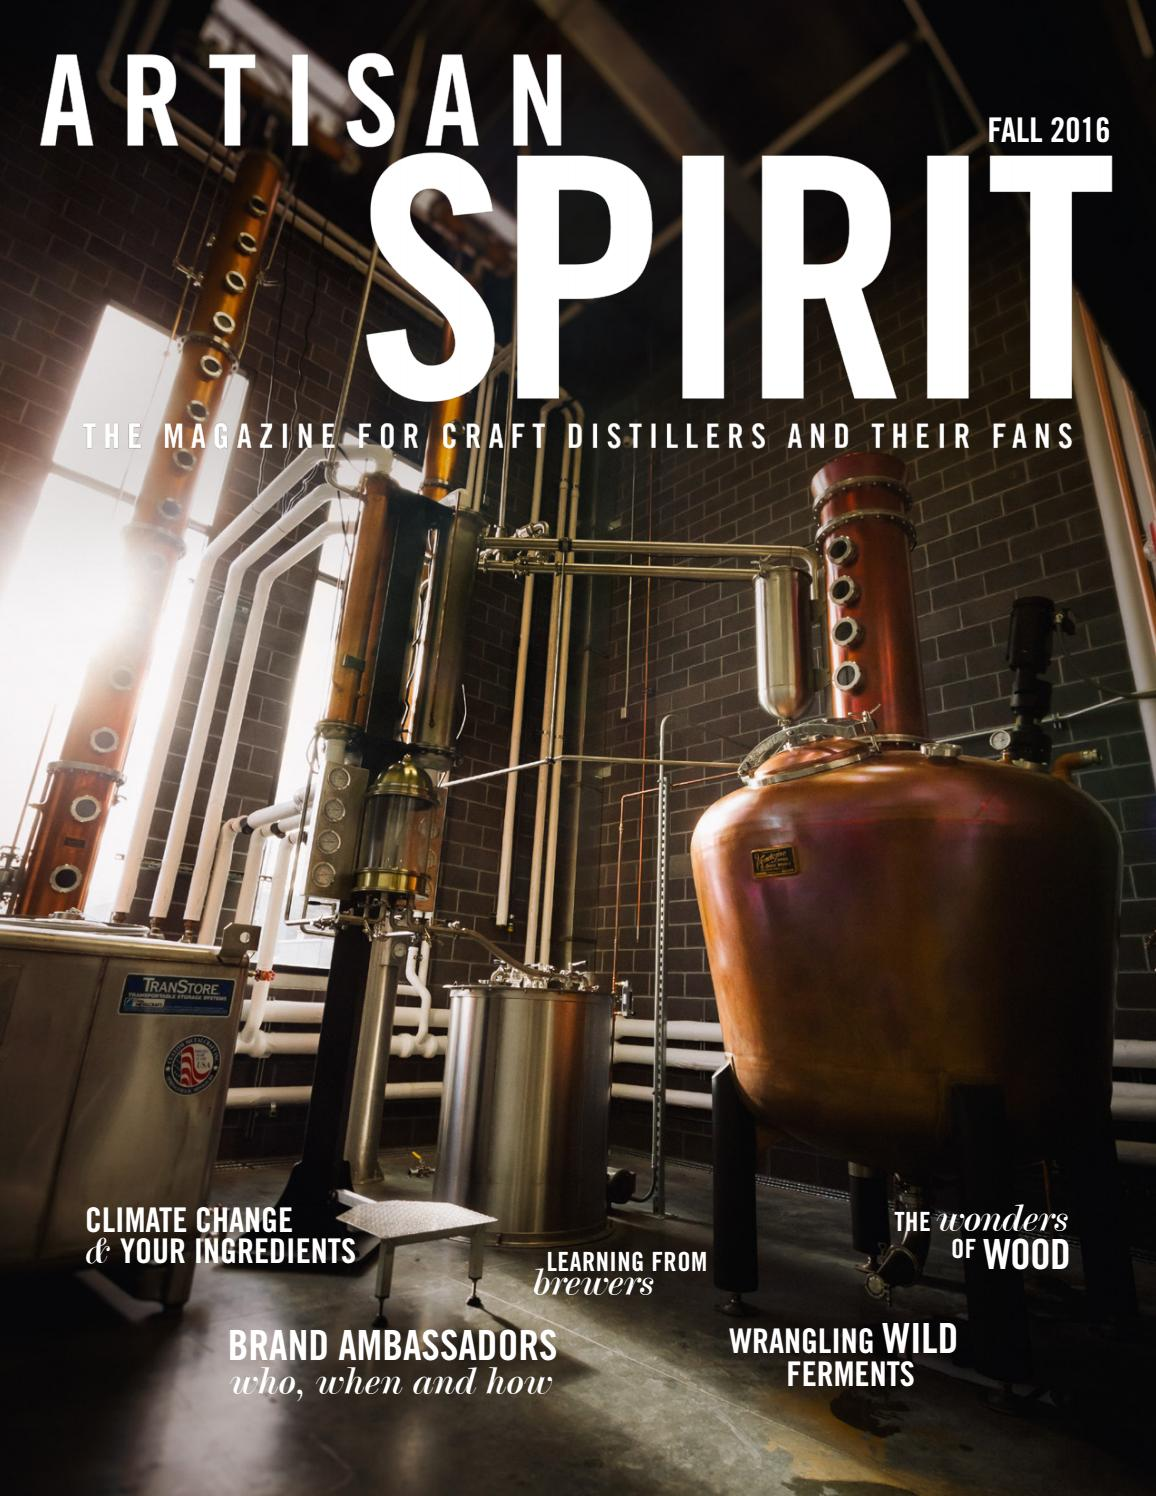 Artisan Spirit: Fall 2016 by Artisan Spirit Magazine - issuu